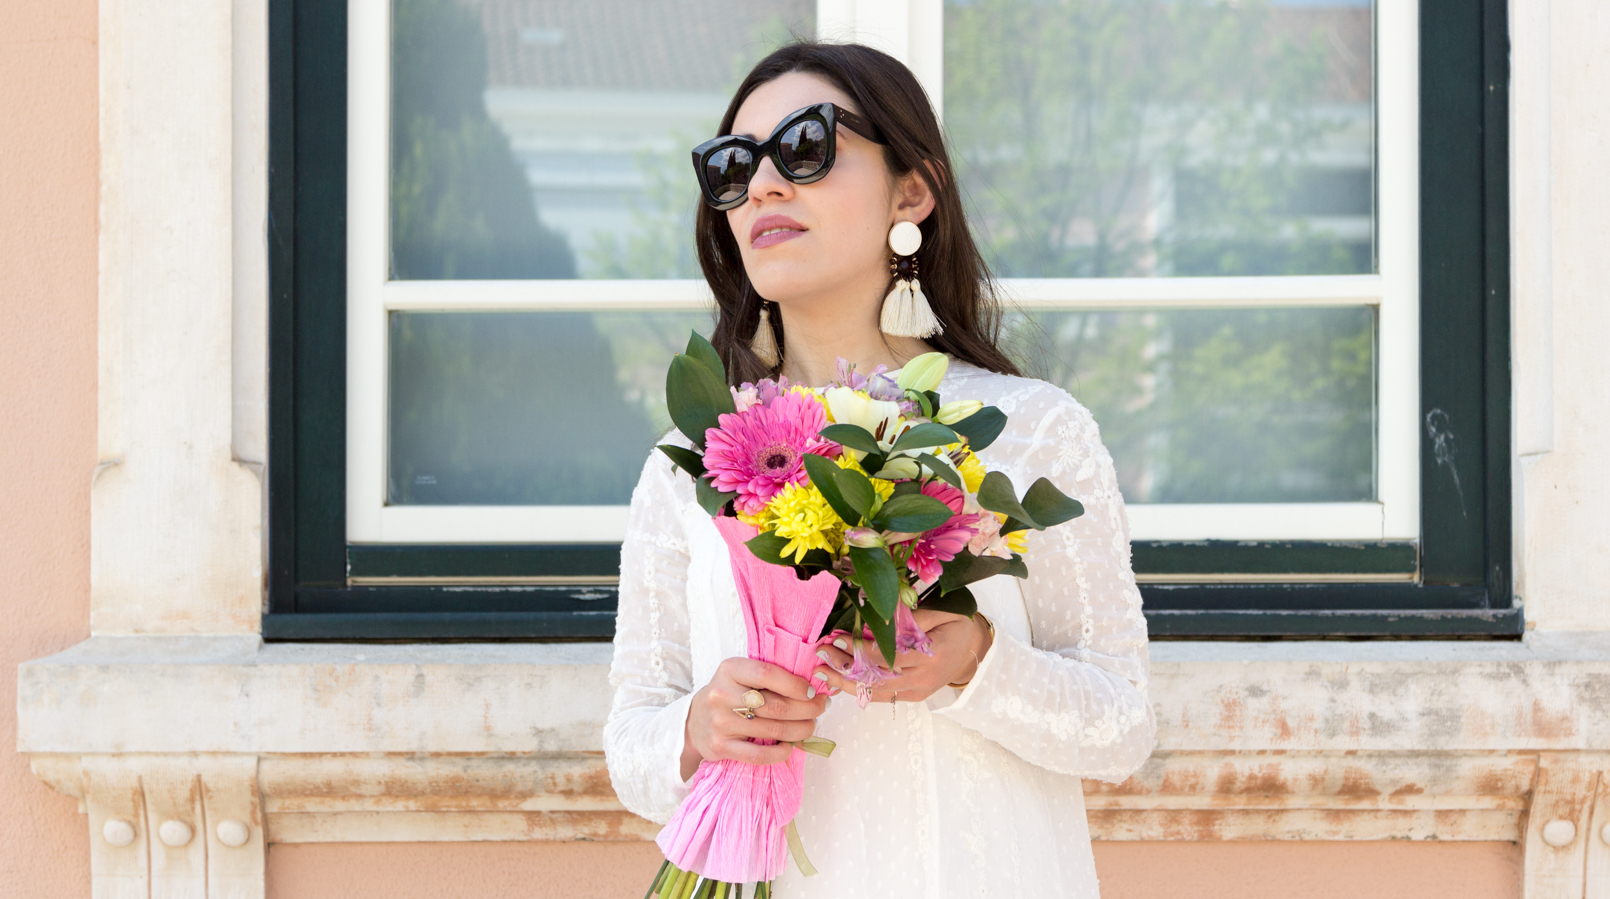 Le Fashionaire Personal: My surgery white embroidered zara girly dress flowers bouquet pink white colorul black celine marta sunglasses white tassels brown bold mango earrings 2339F EN